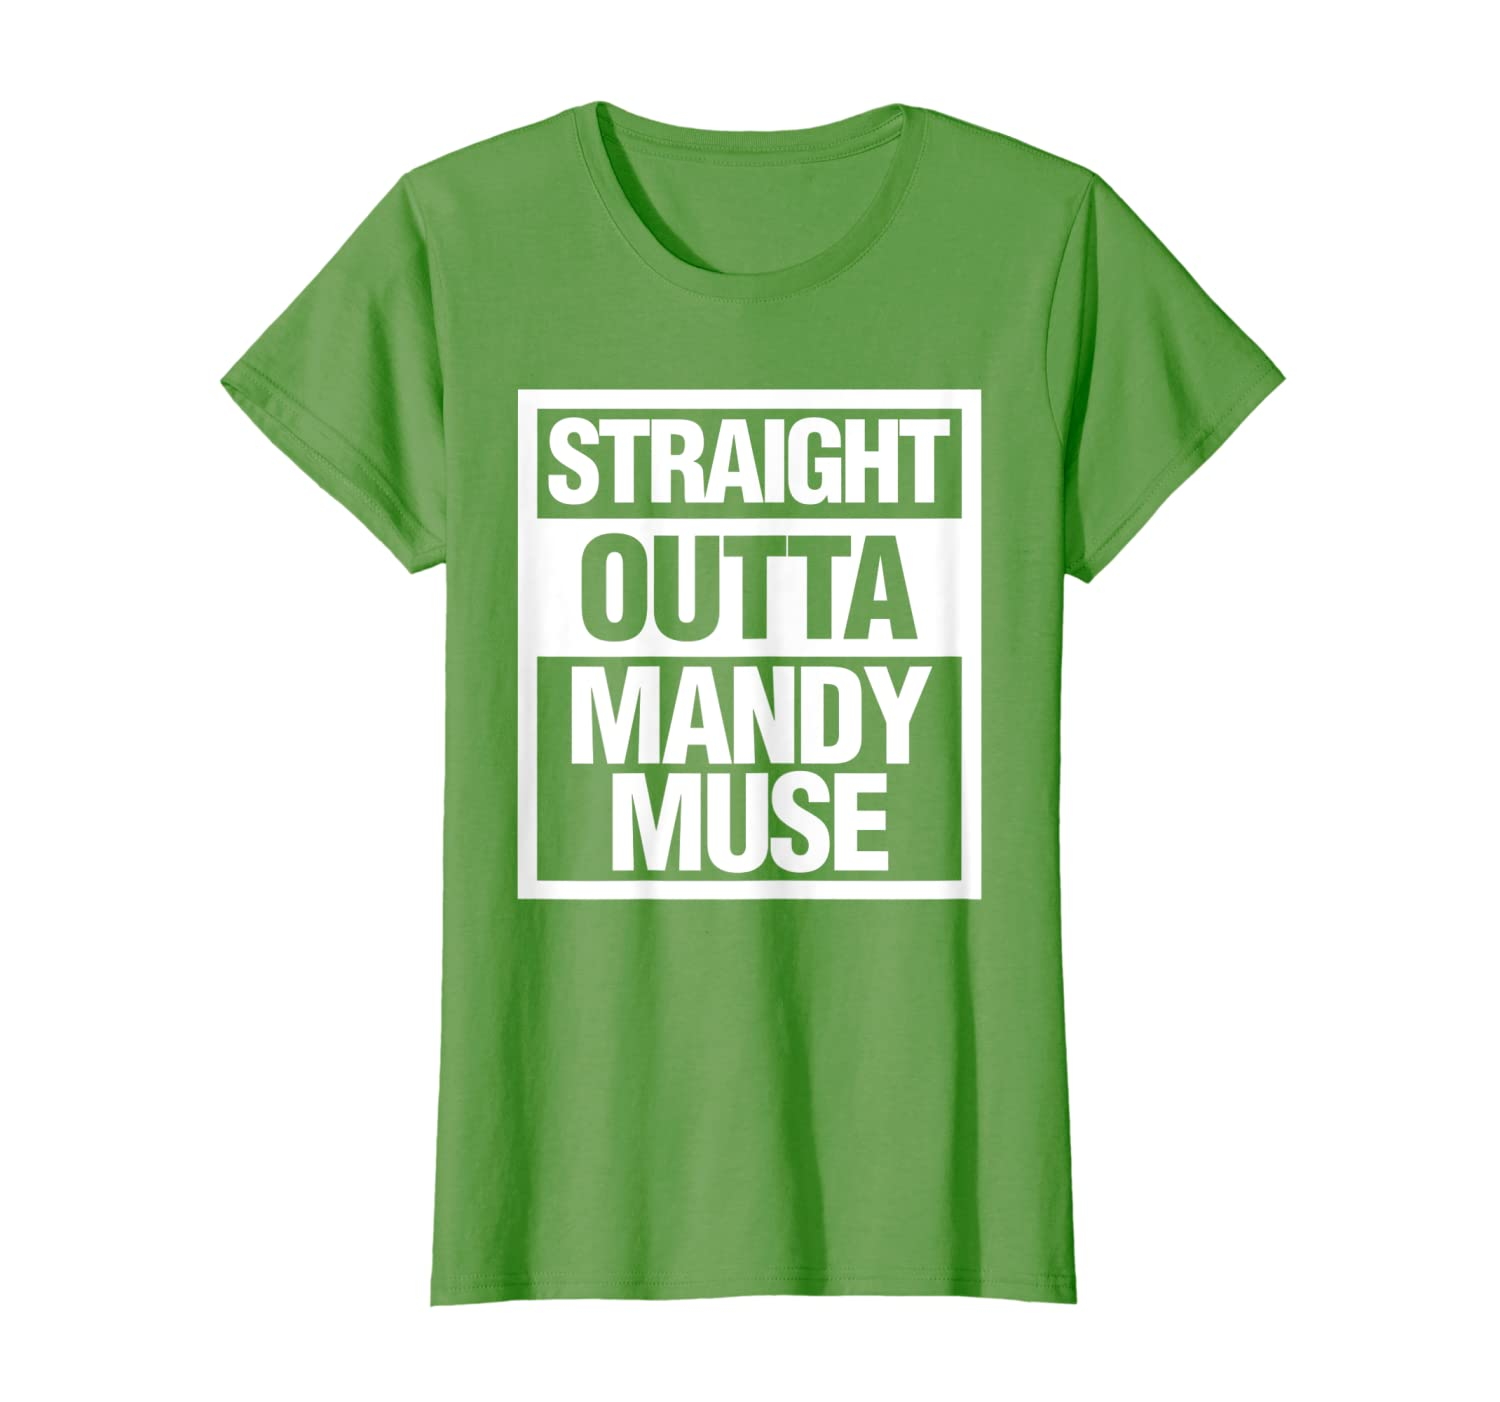 Amazon com: Straight Outta Mandy Muse Funny Adult Parody T